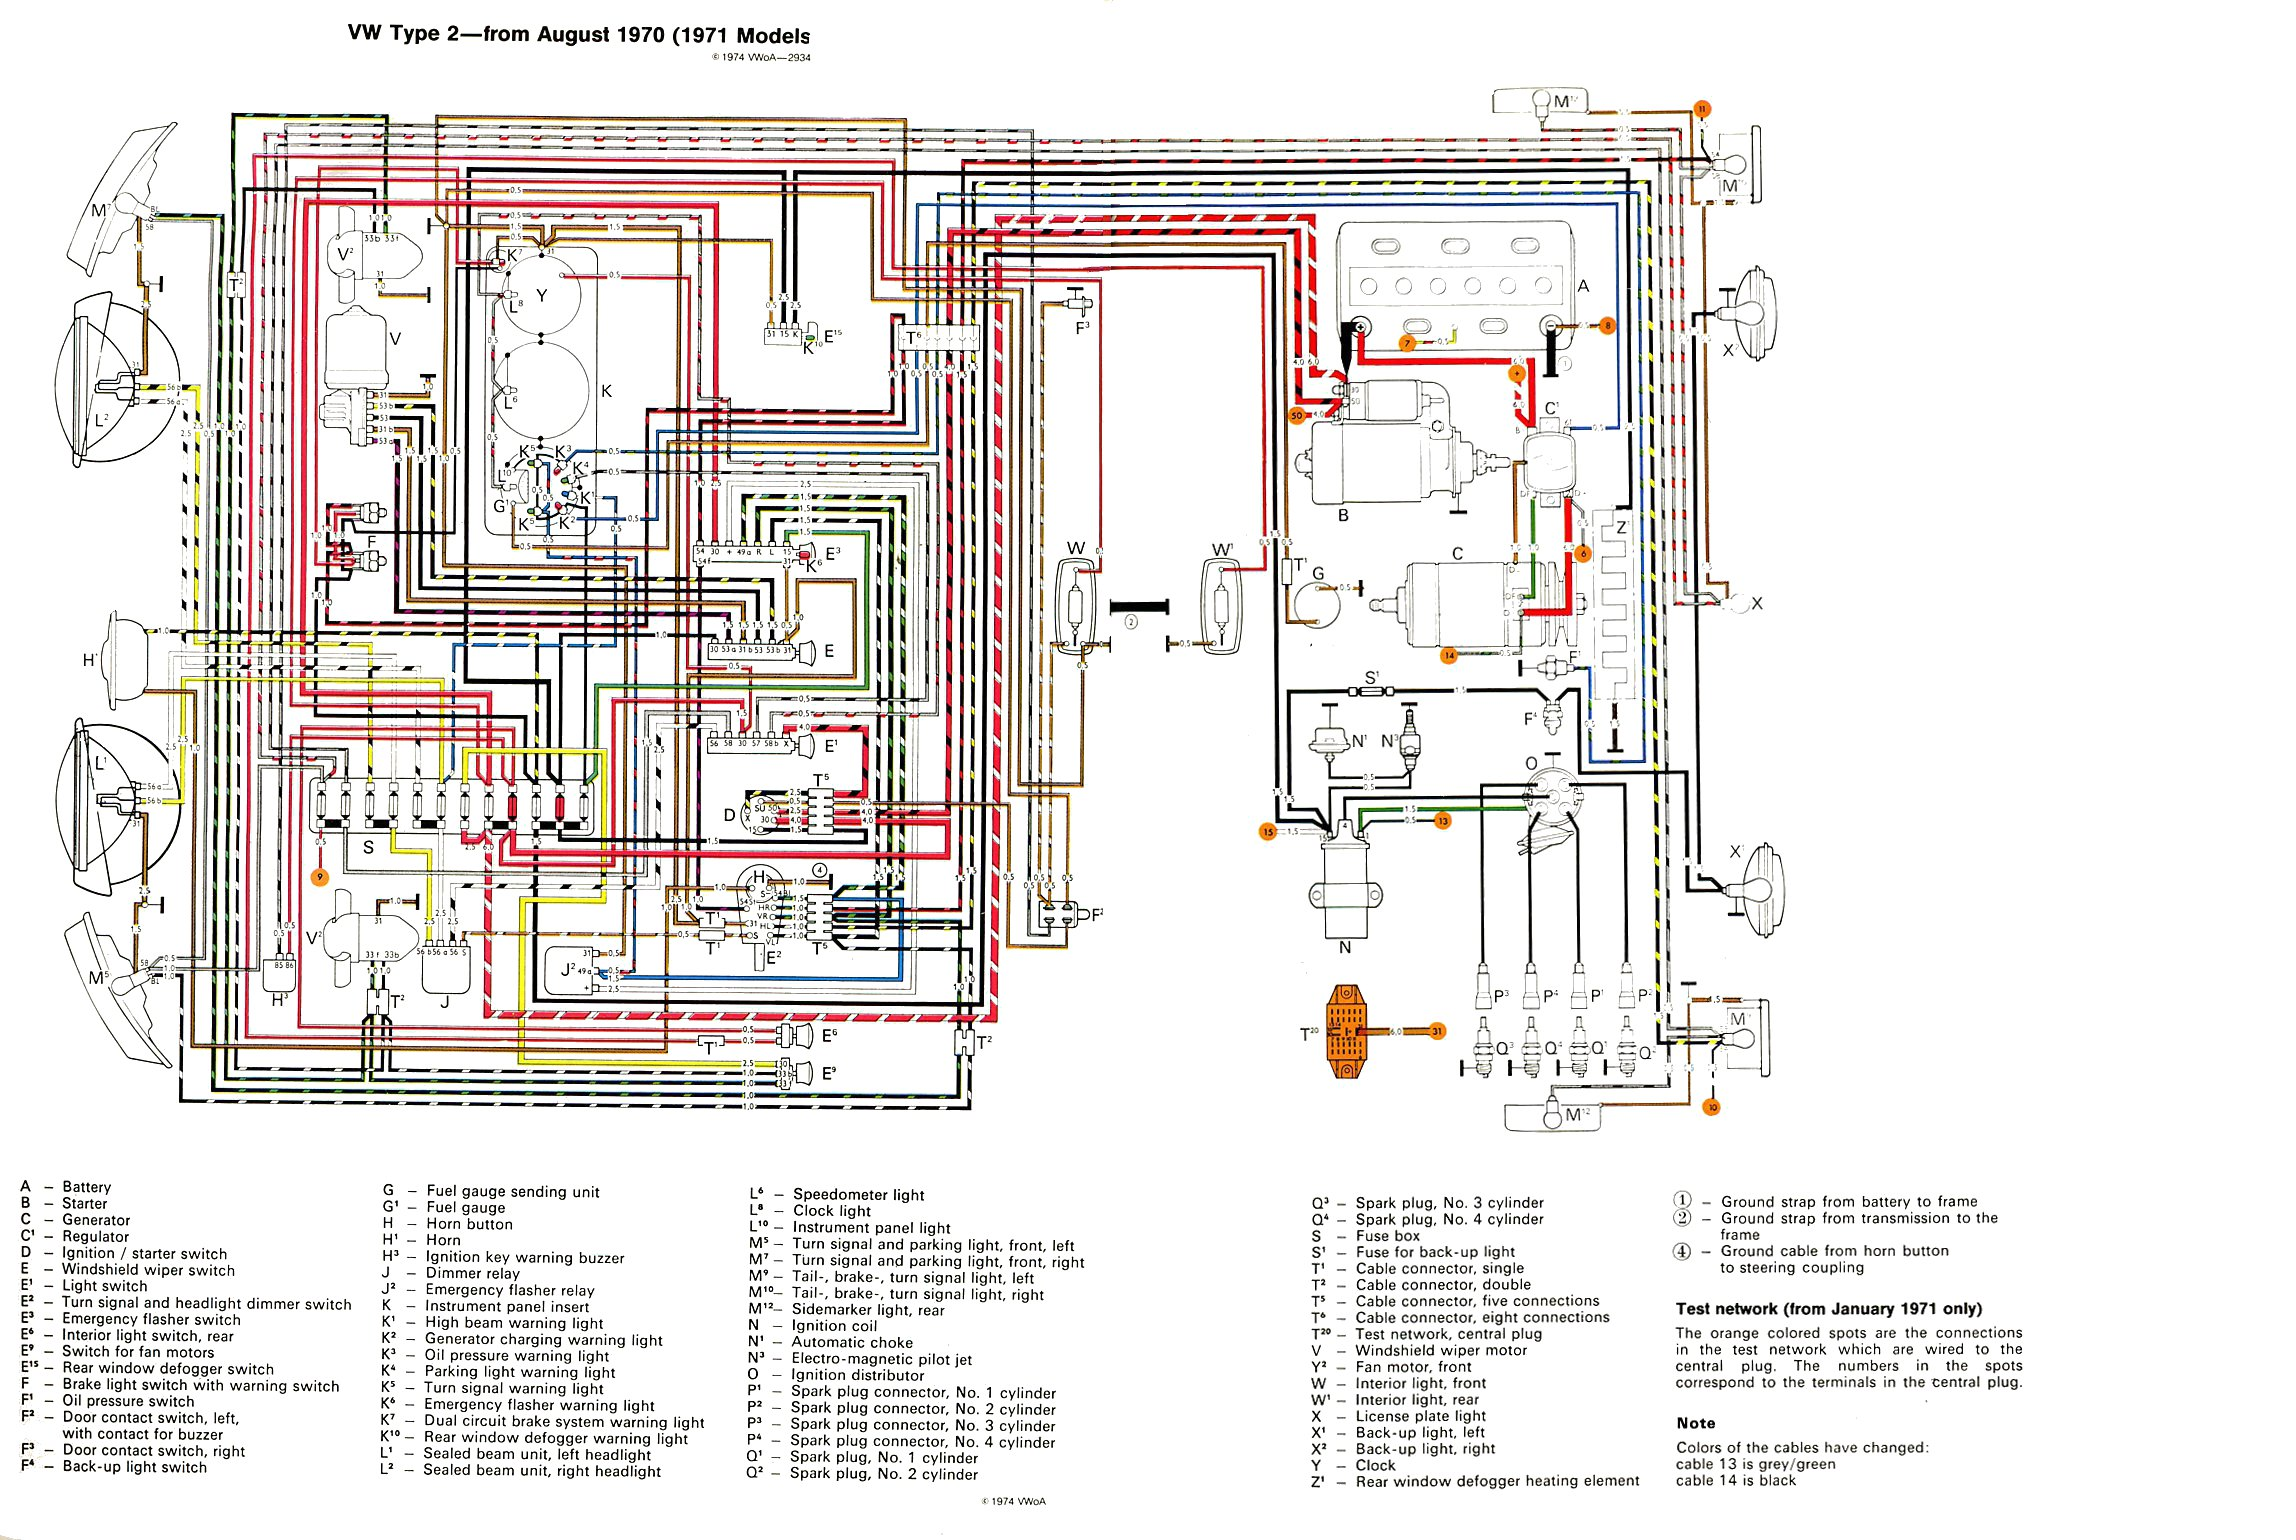 baybus_71 71 vw bus wiring diagram 1970 vw bus fuse box diagram \u2022 wiring Wiring Harness Diagram at sewacar.co